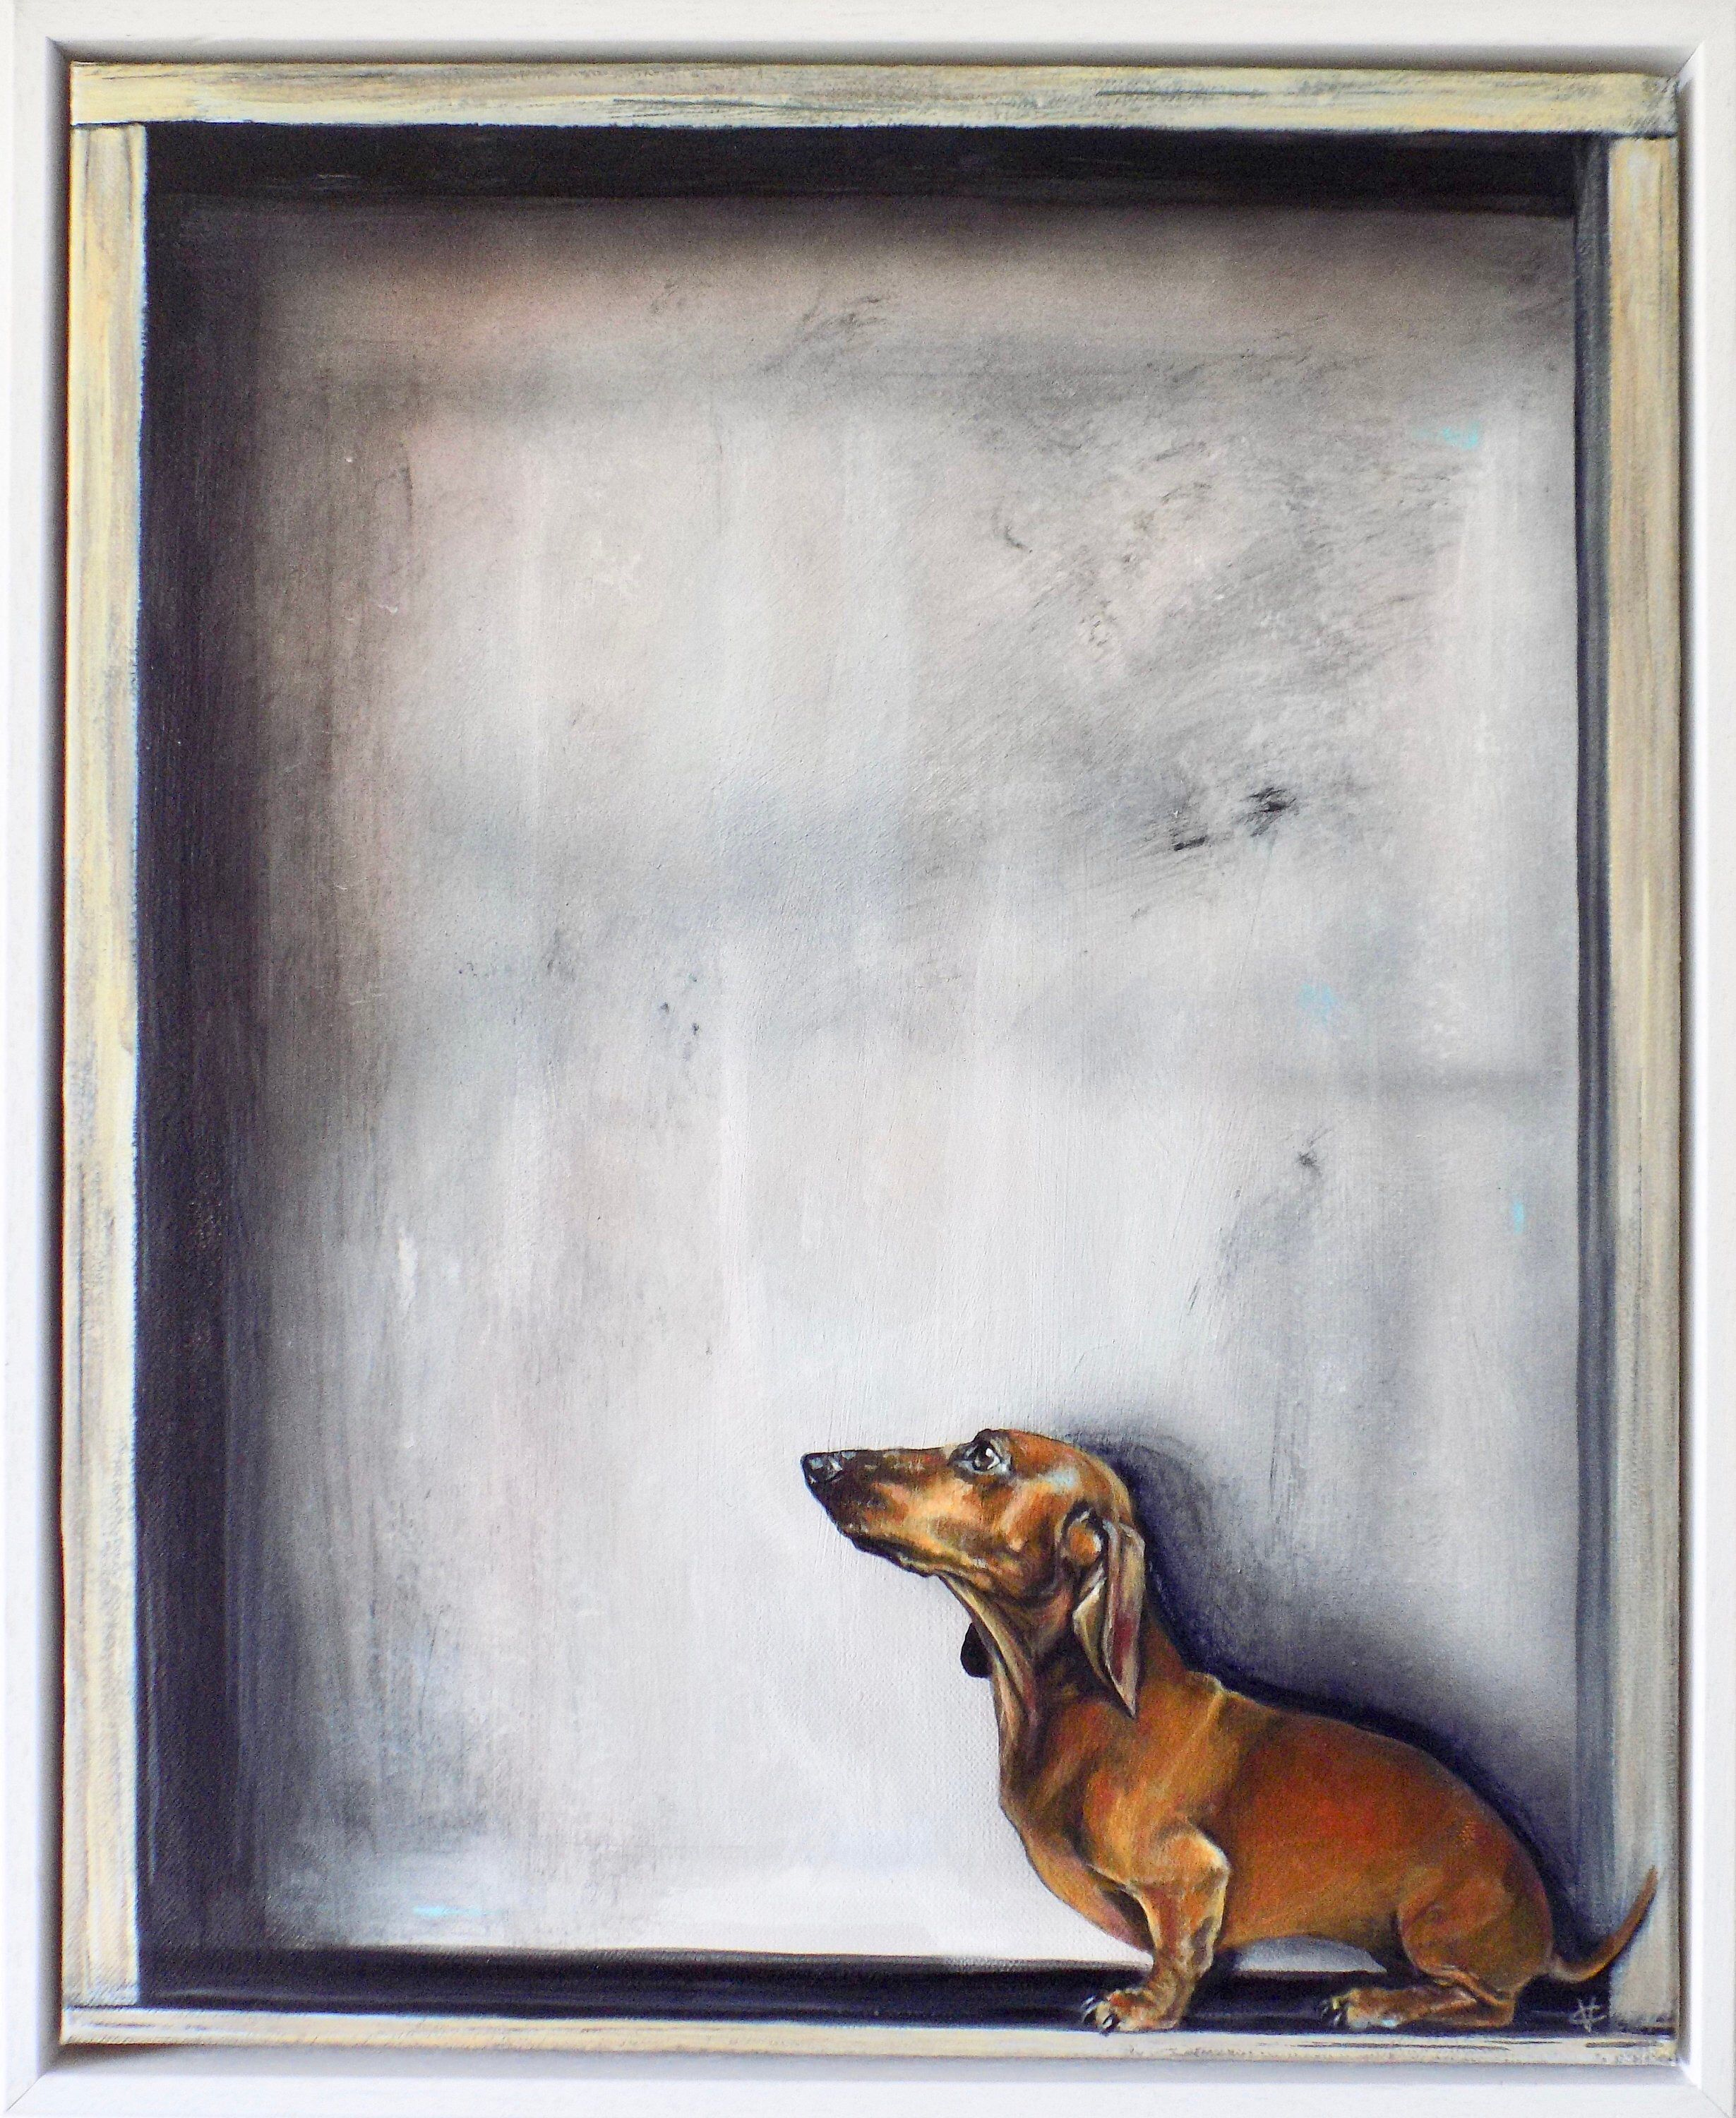 Framed Dachshund Painting On Canvas By Victoria Coleman Painting